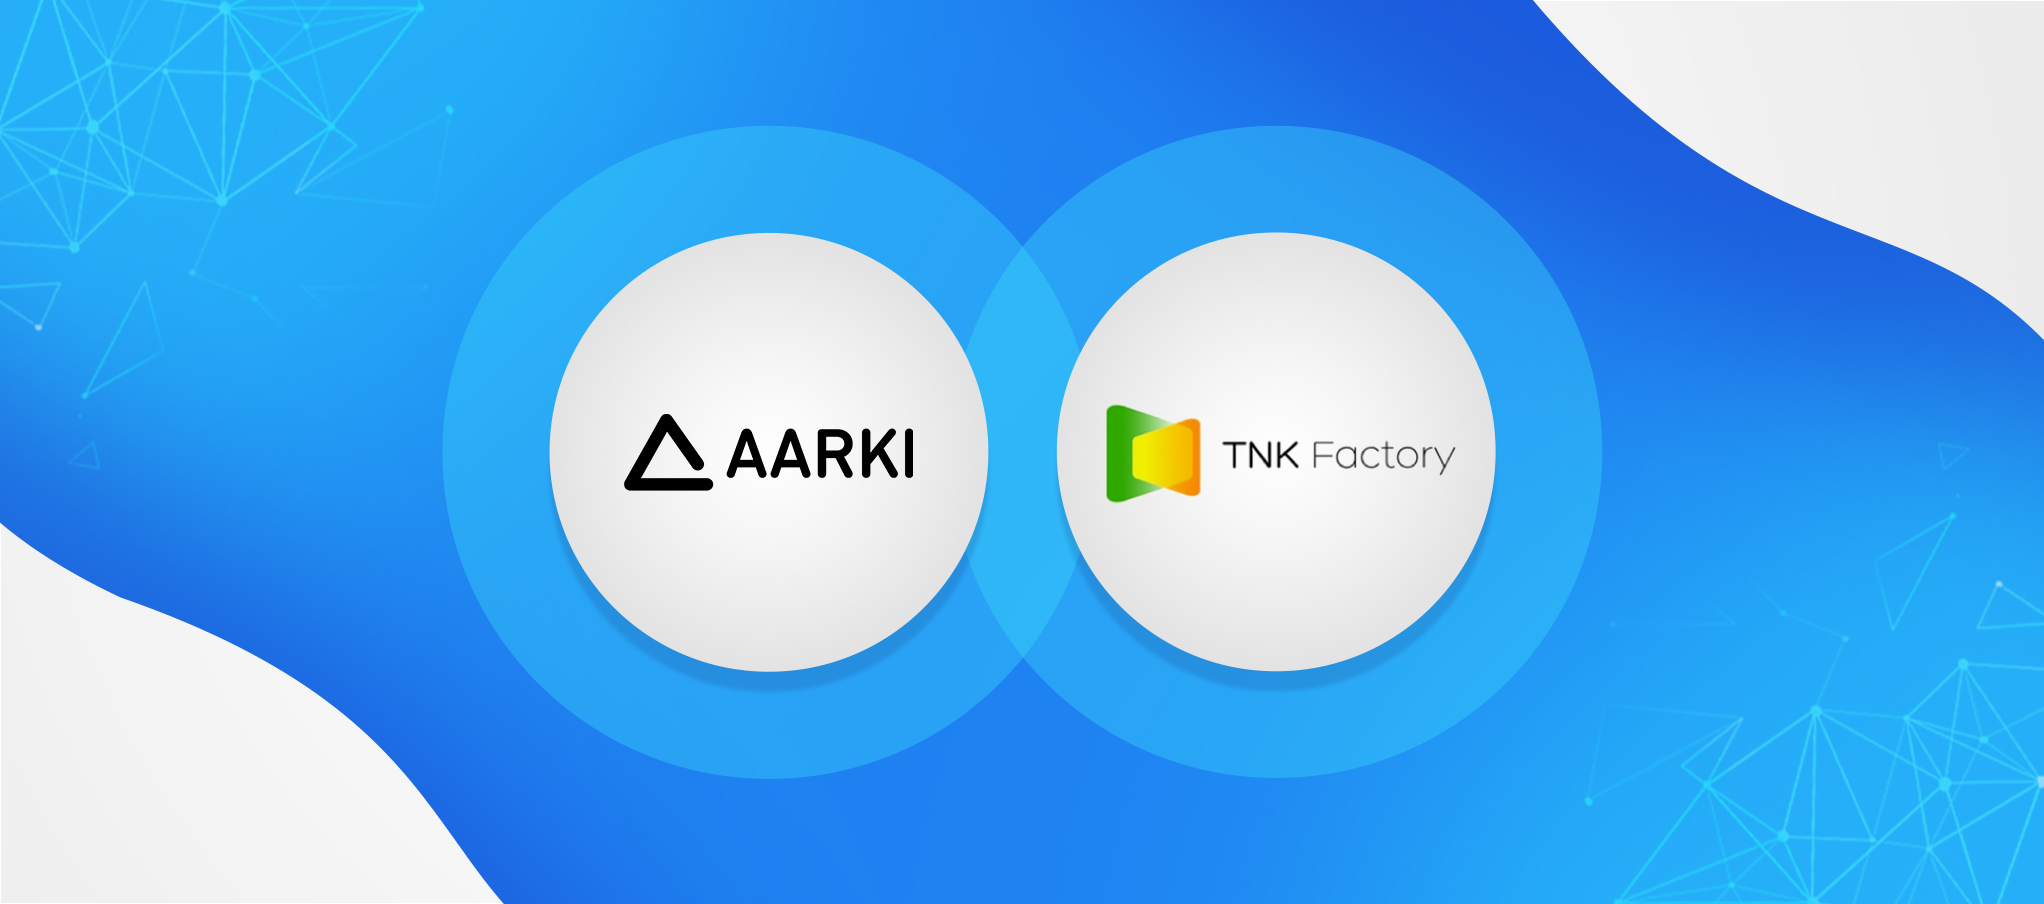 Aarki and TNK integration: logos